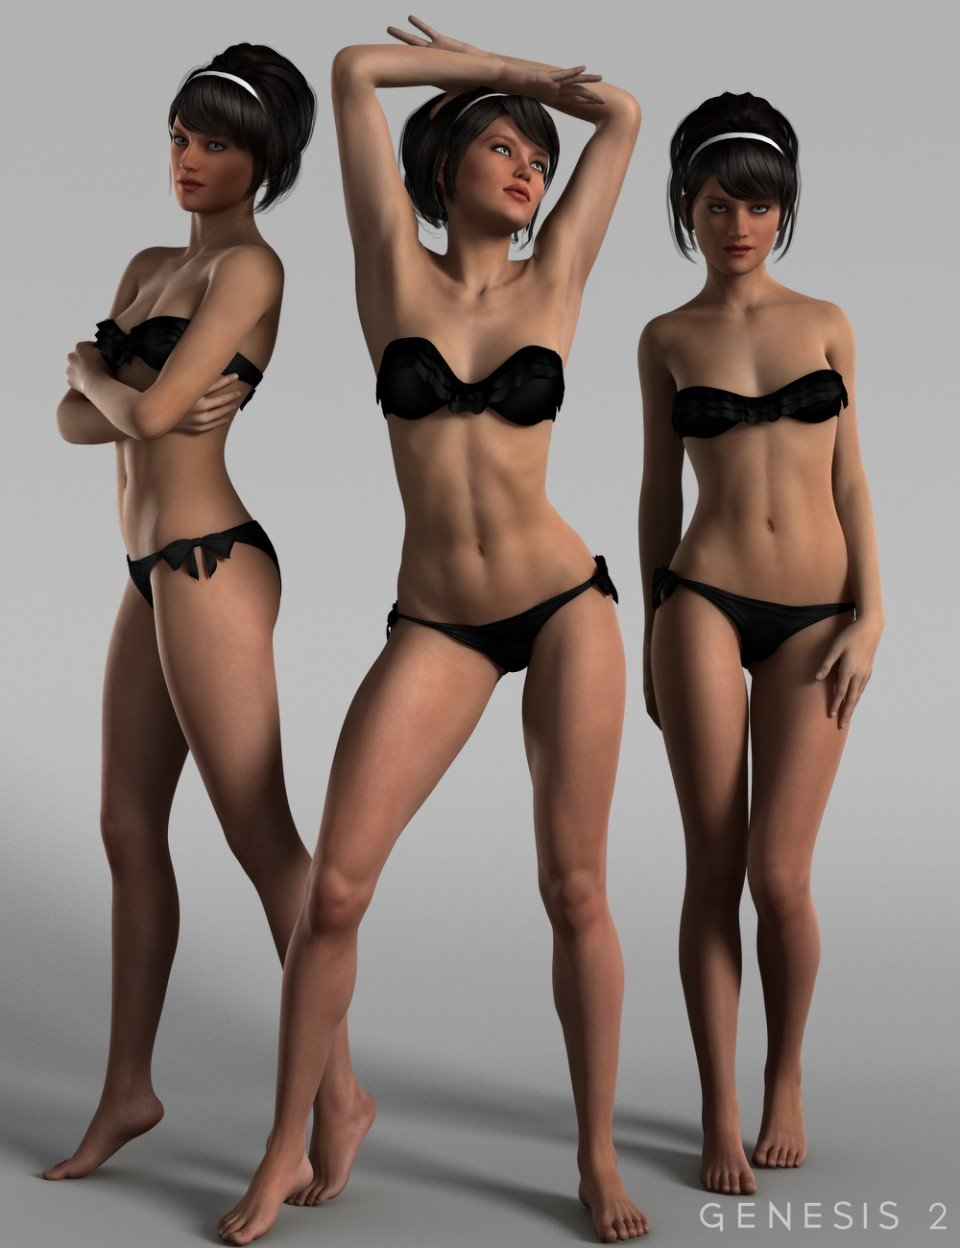 Dishy Delight Poses for Genesis 2 Female(s)_DAZ3D下载站